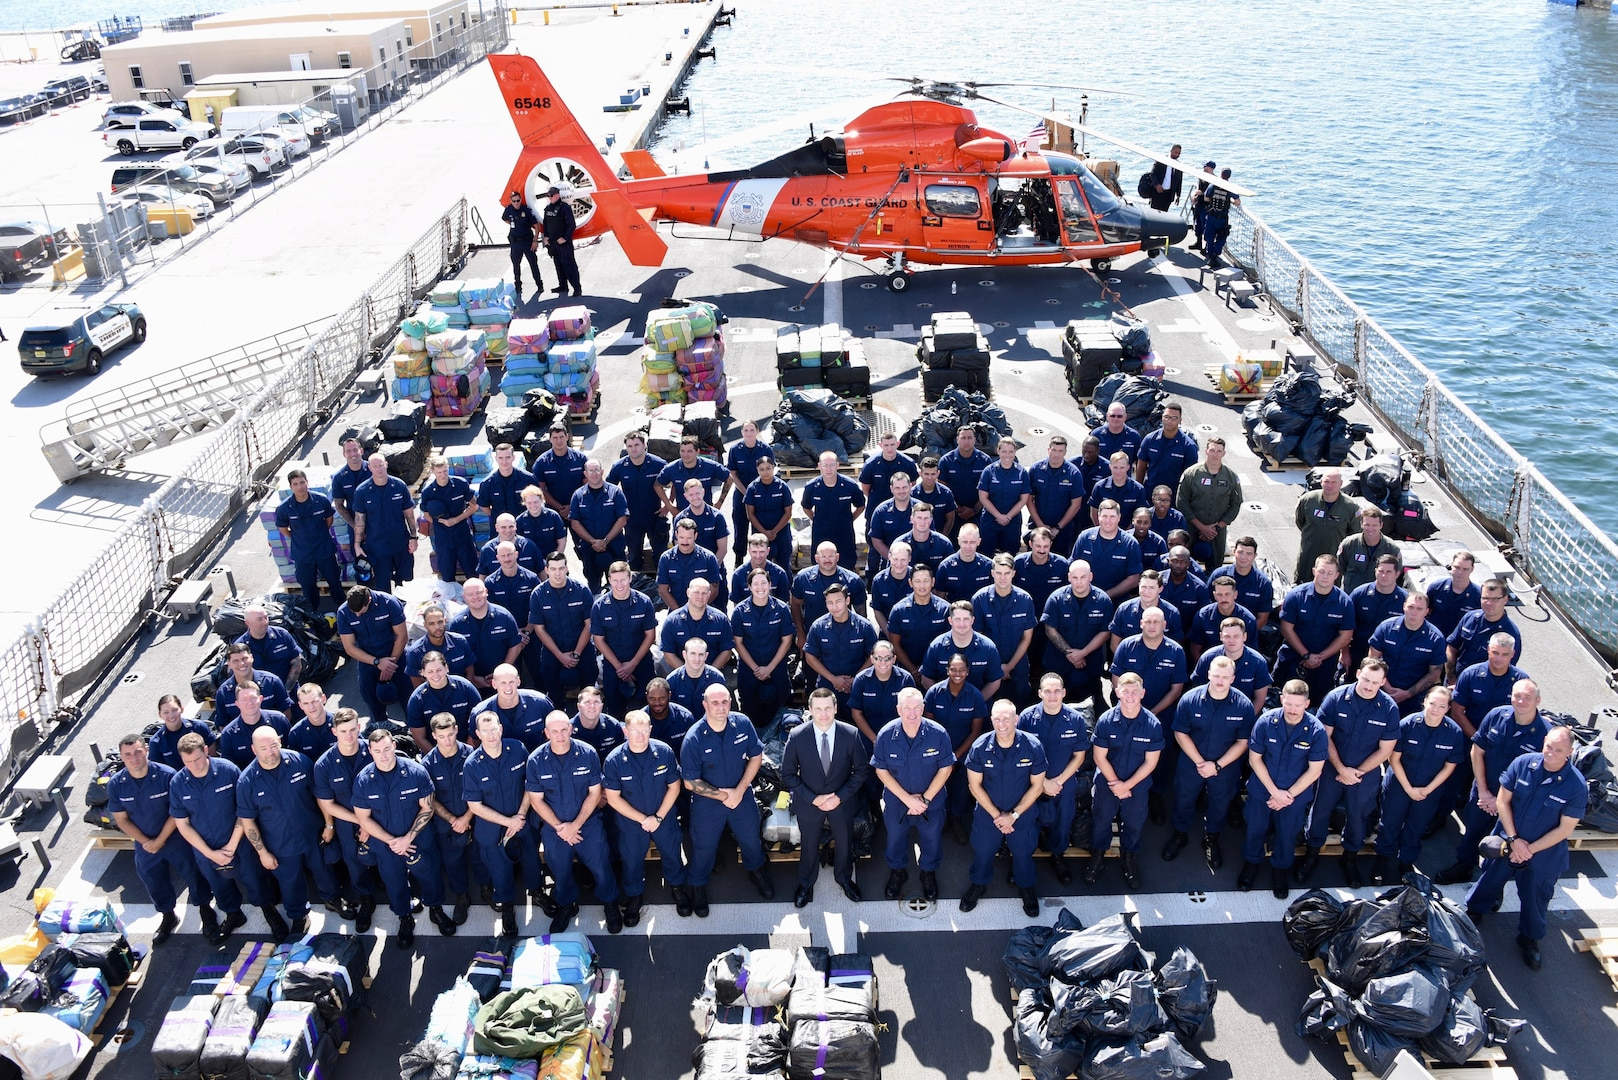 A crew group photo on the deck of Coast Guard Cutter Hamilton.